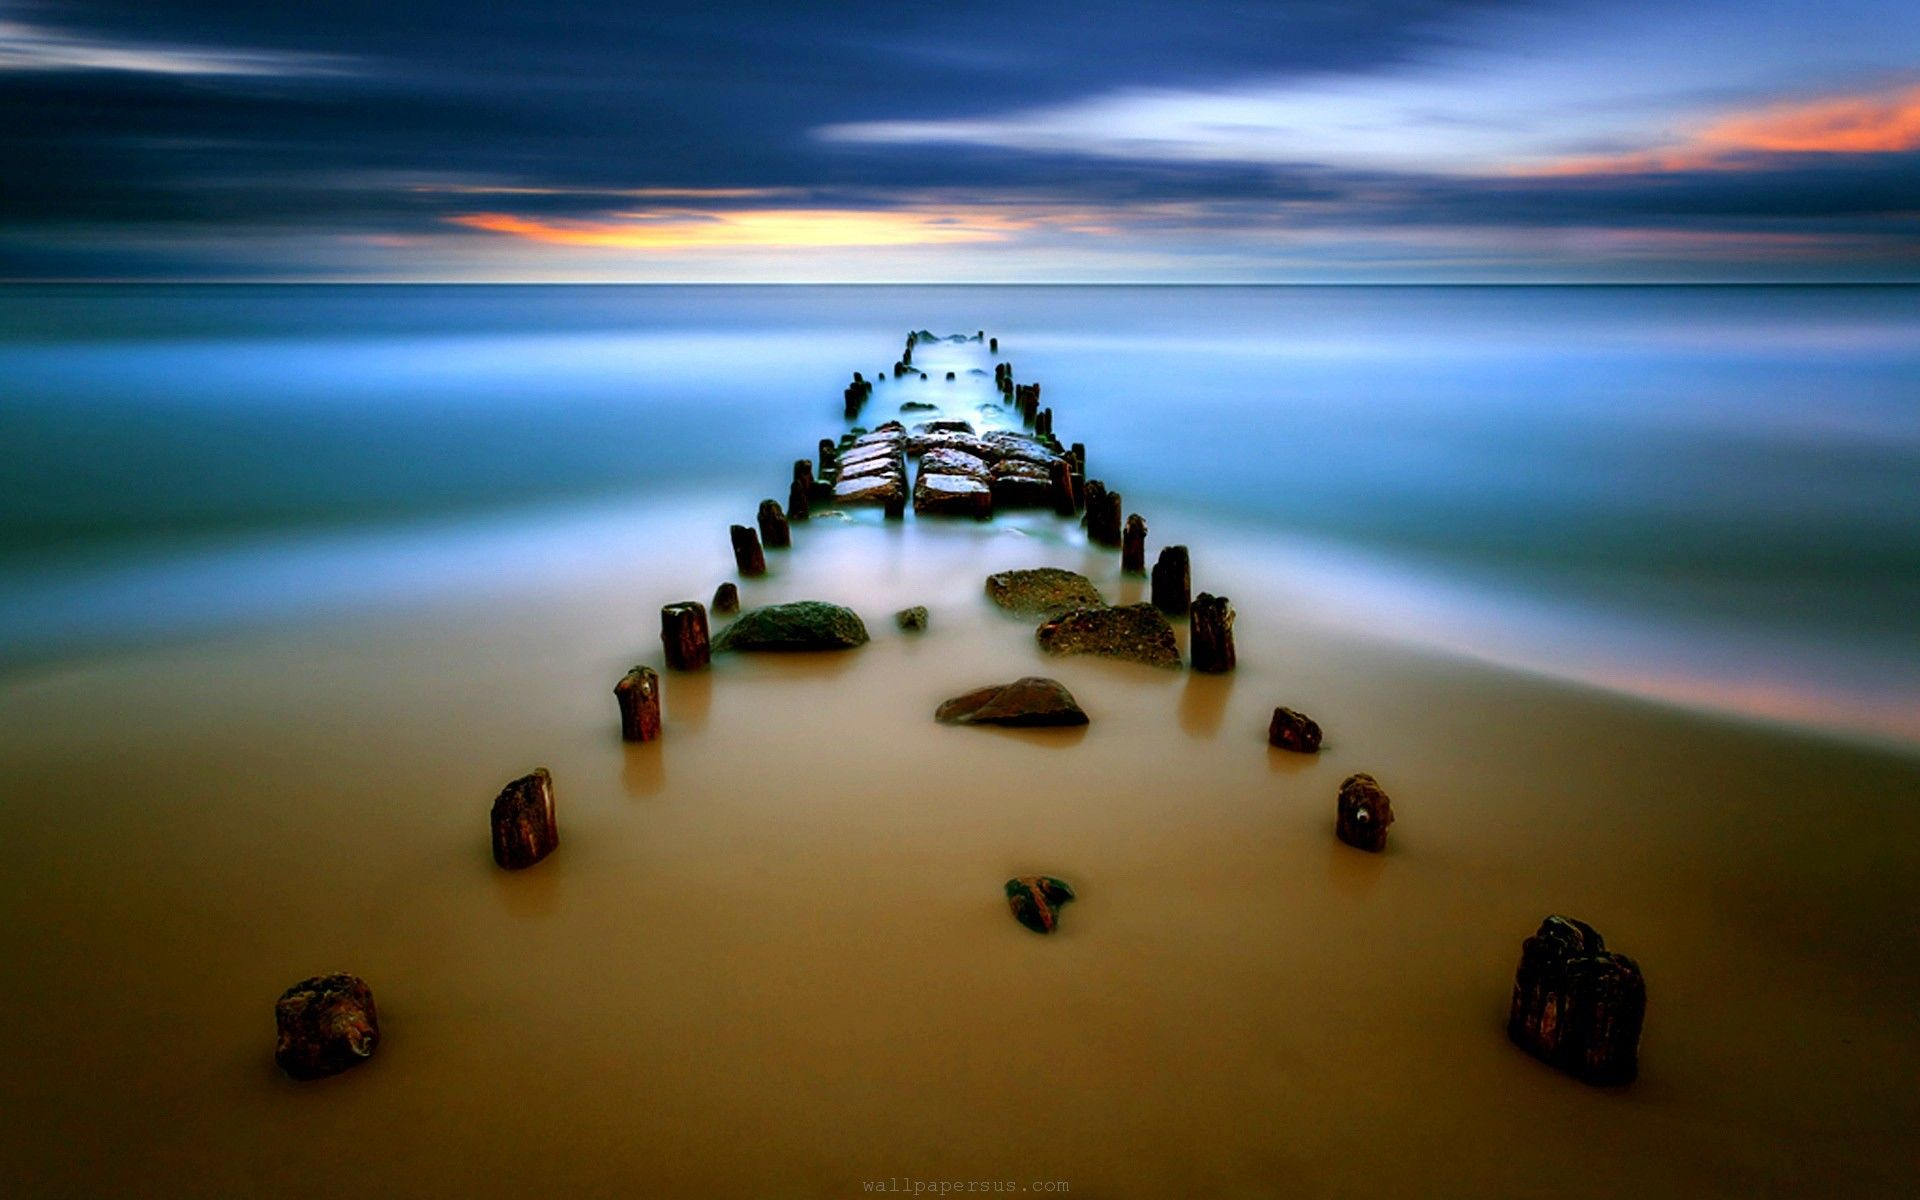 dock | nature, beach, sand, sea, dock, photography - wallpapersus